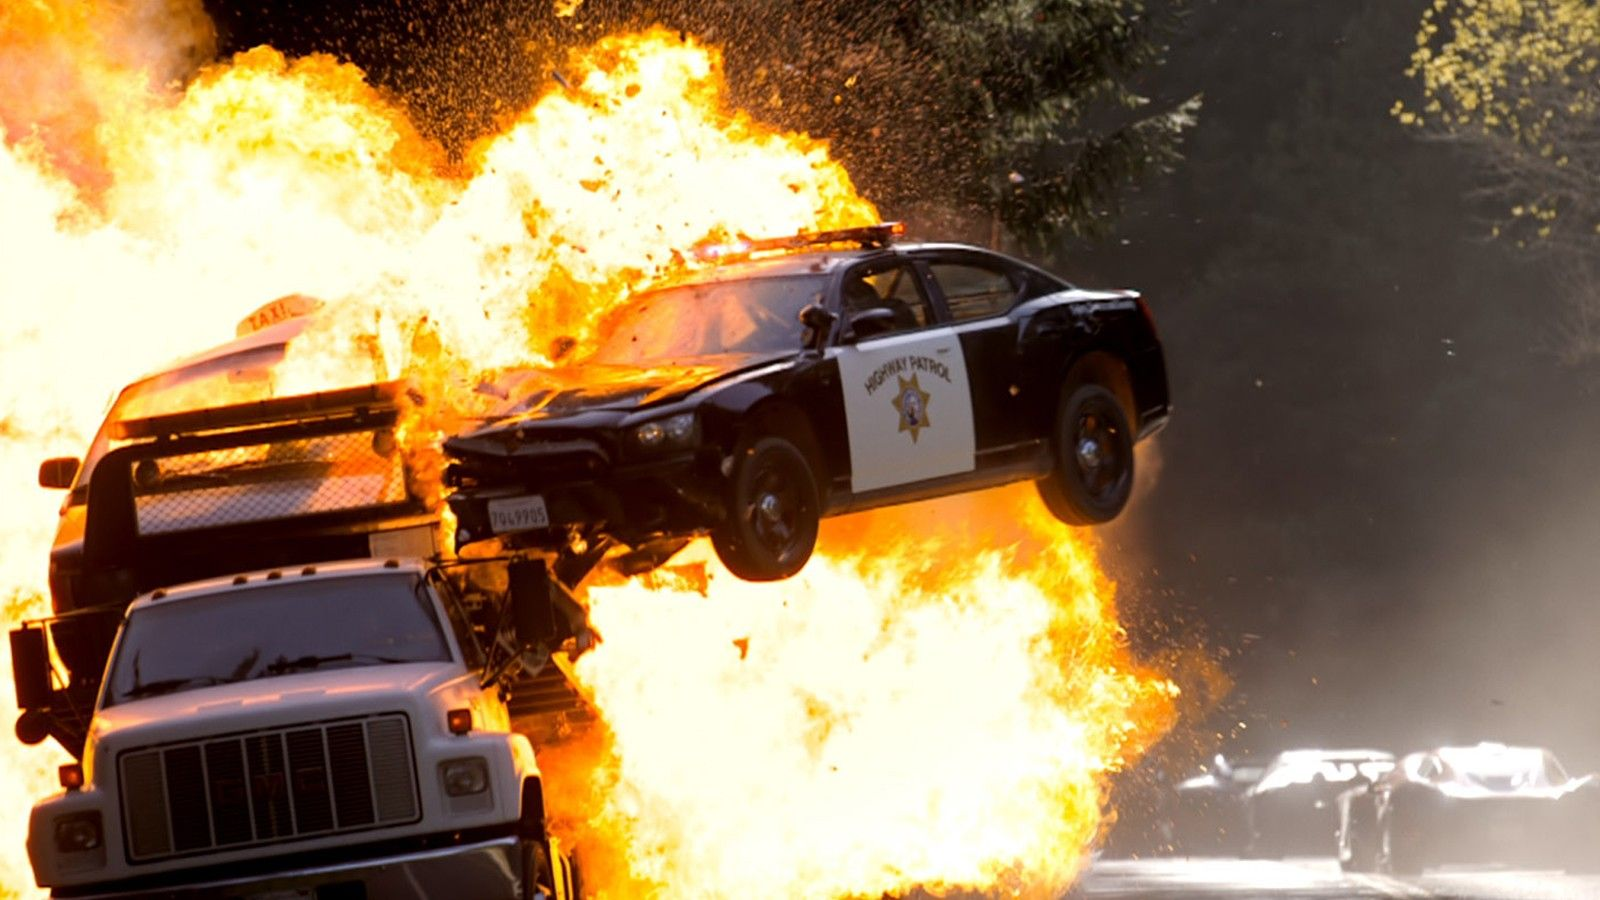 Unrealistic things, Cars exploding after a gunshot at the gas tank. Although cars burn intensely, explosions are rare and one of those things that only happen in movies.